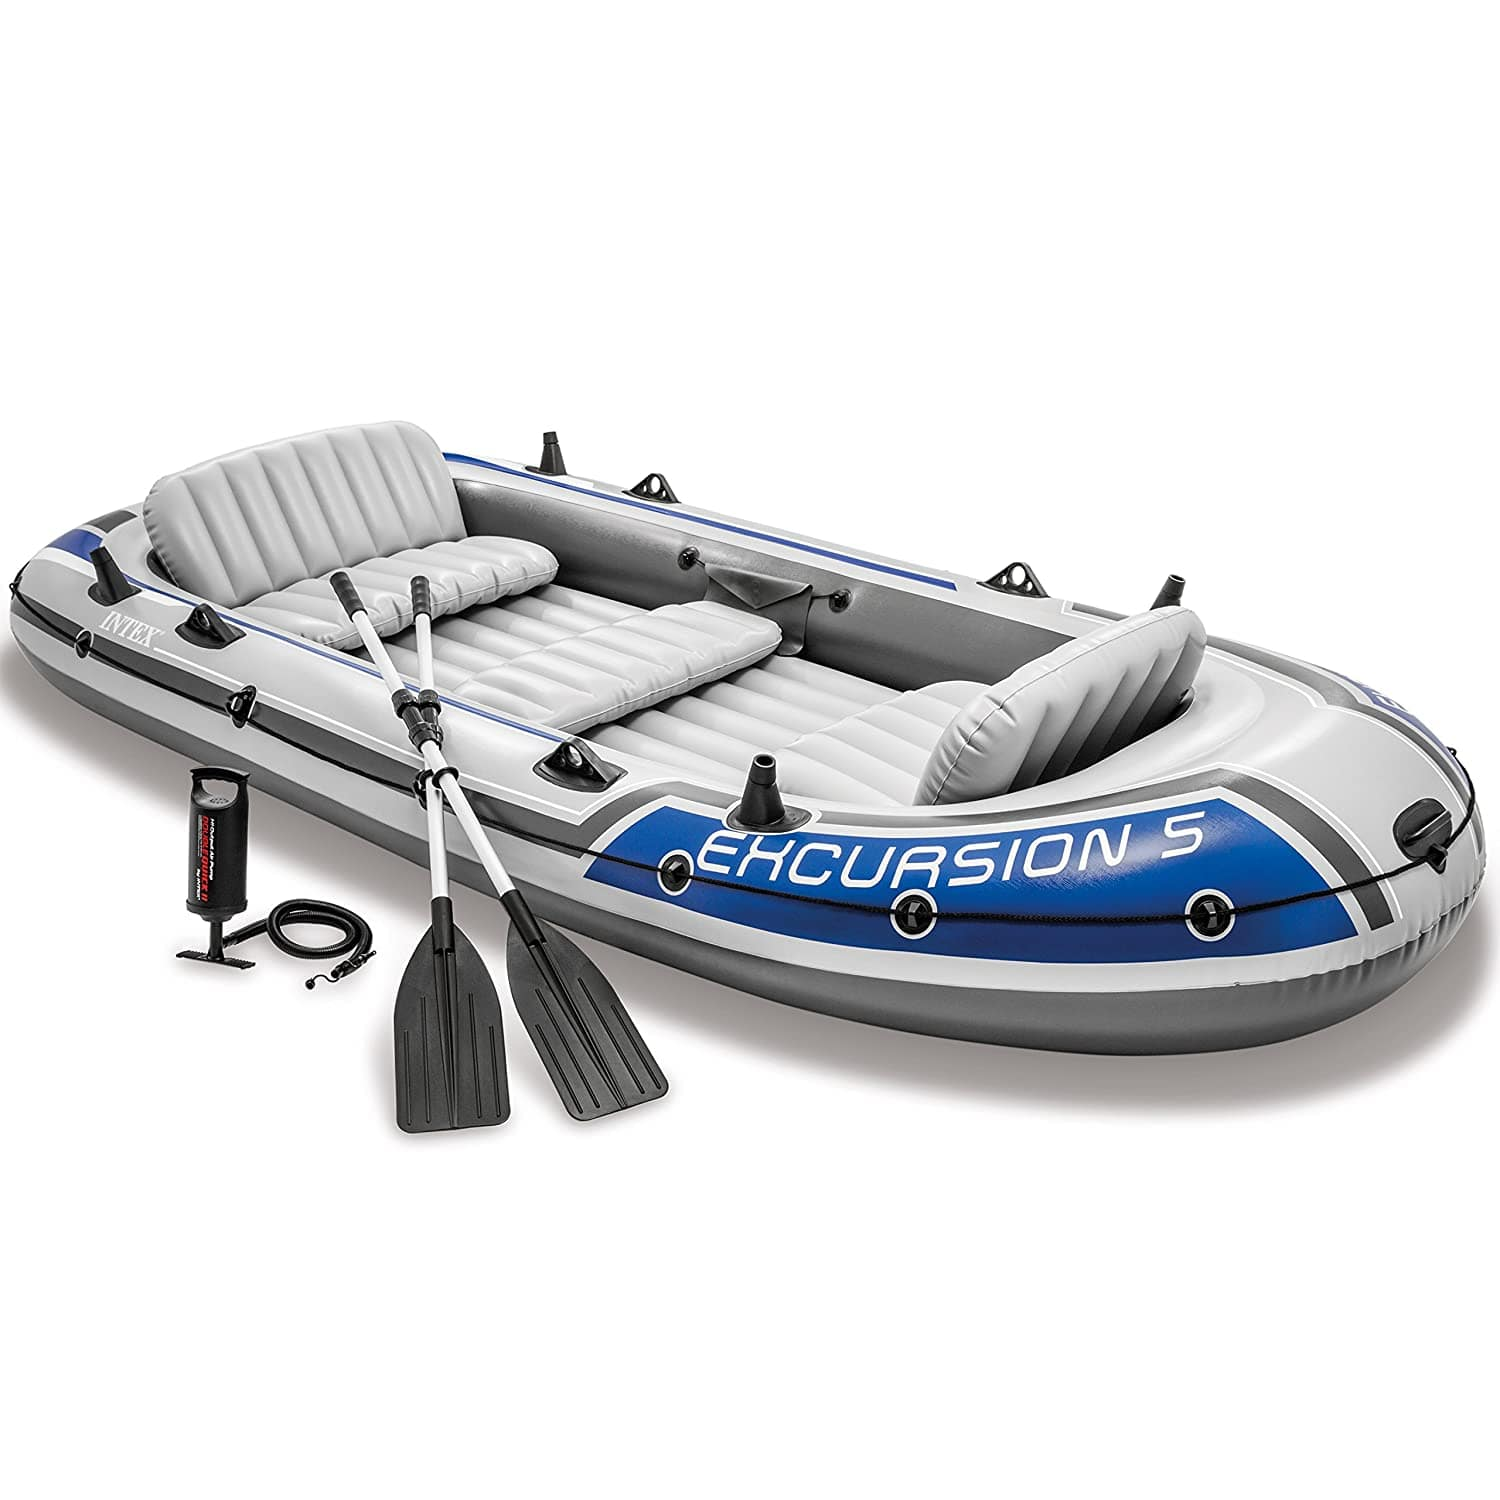 Intex Excursion 5, 5-Person Inflatable Boat Set with Aluminum Oars and High Output Air Pump $102.62